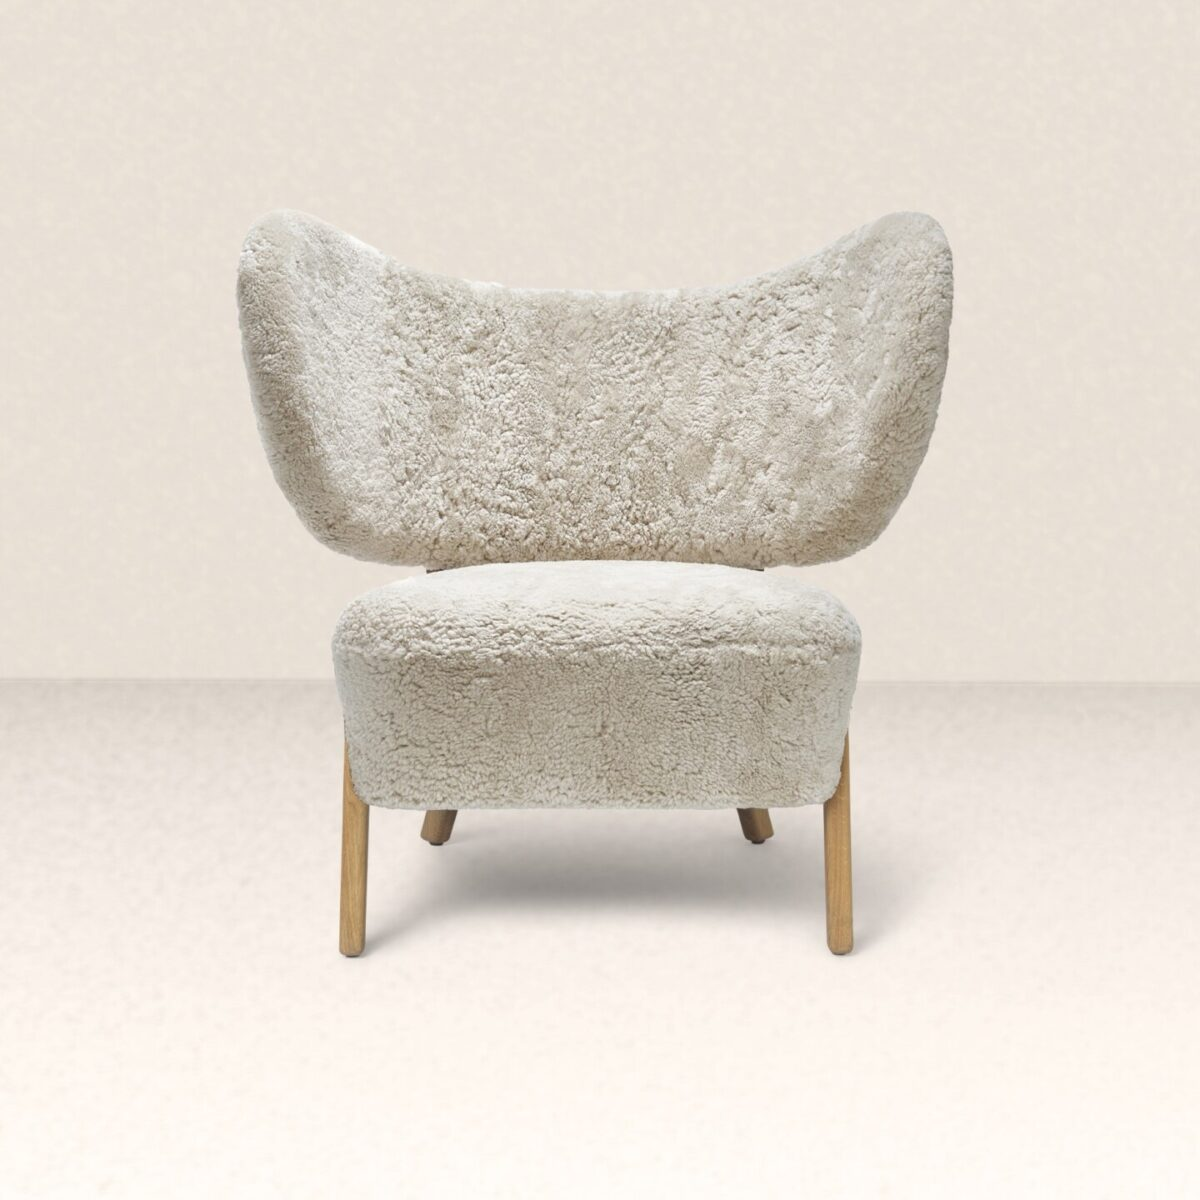 tmbo-lounge-chair-sheepskin-moonlight-1440x1440